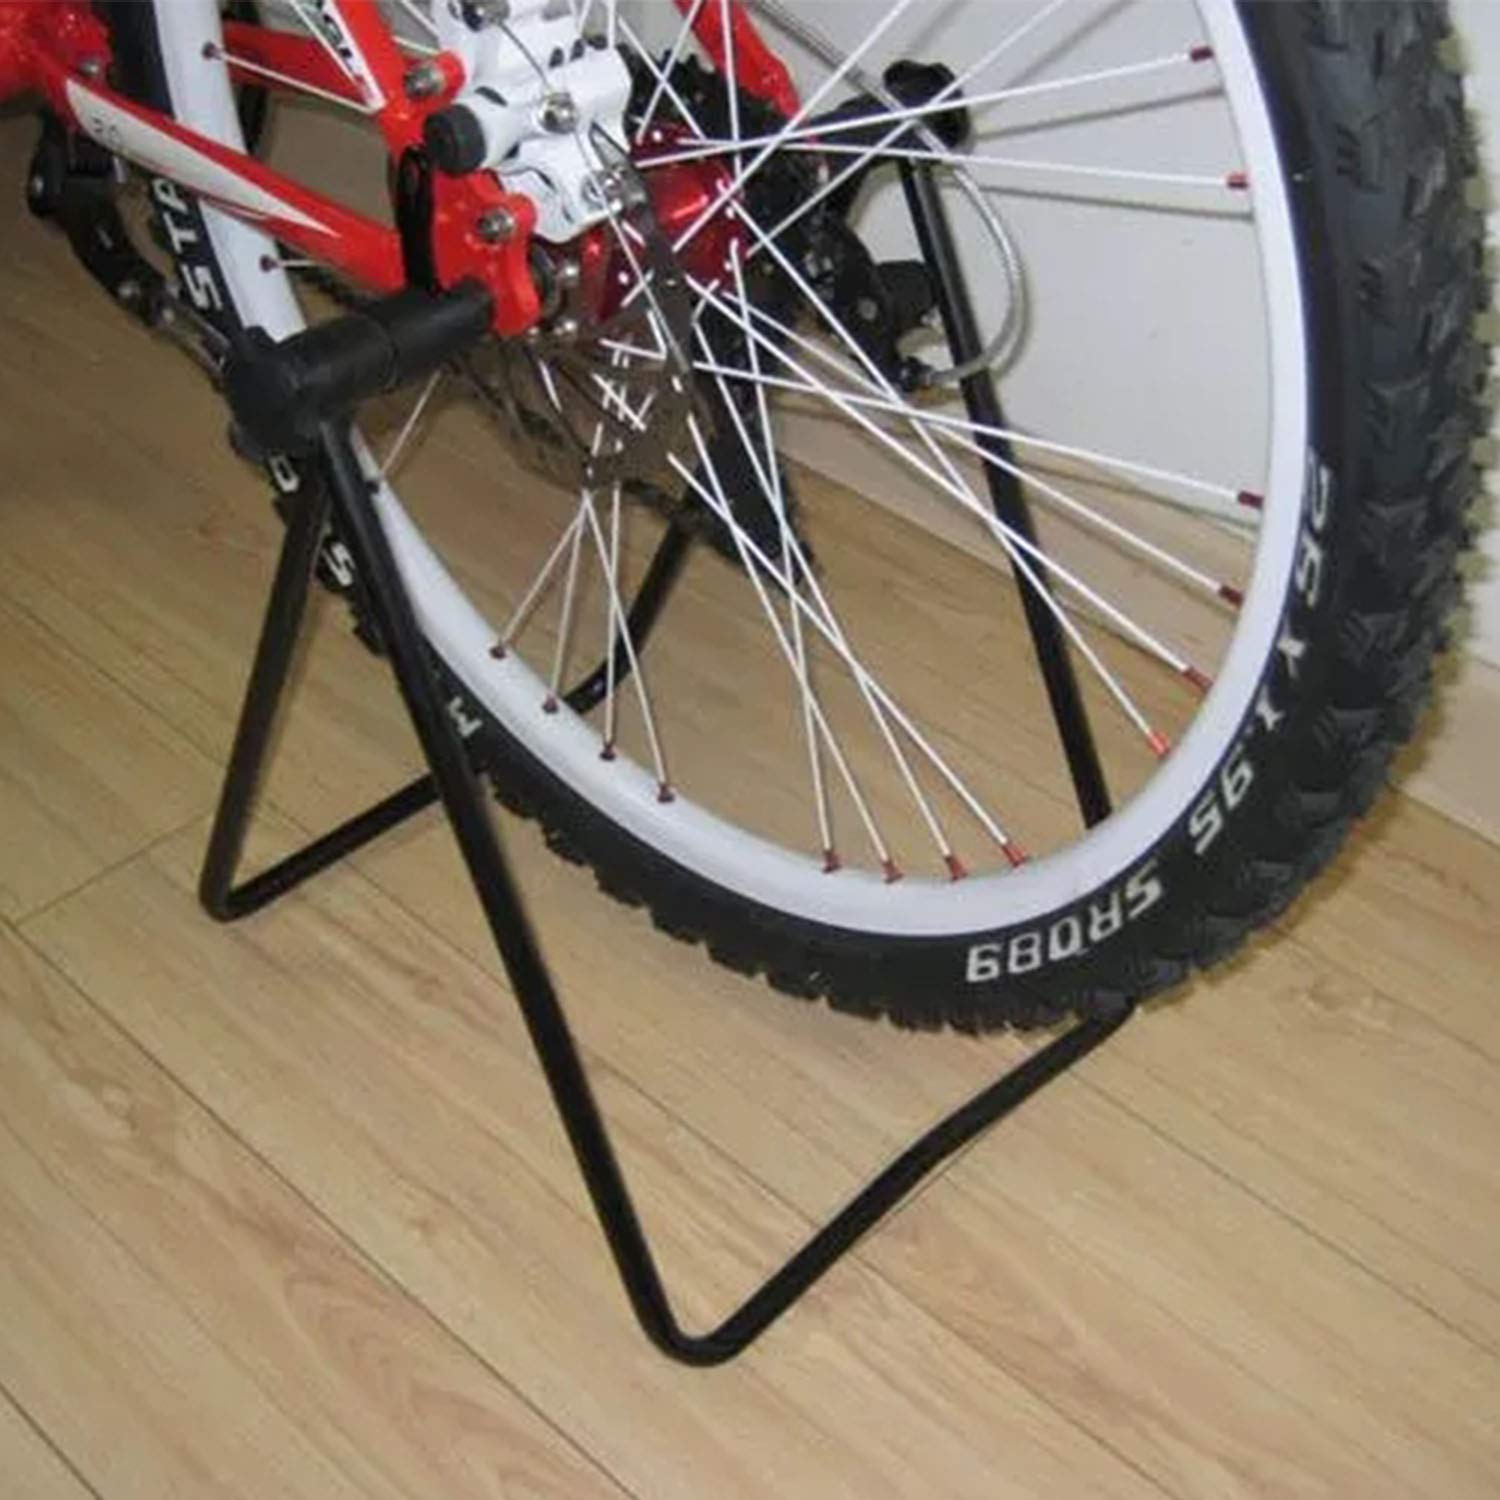 Your only family Practical U-Shaped Bicycle Parking Rack Mountain Bike Bracket Bicycle Display Stand Maintenance Rack Sample Support Frame Durable by Your only family (Image #6)